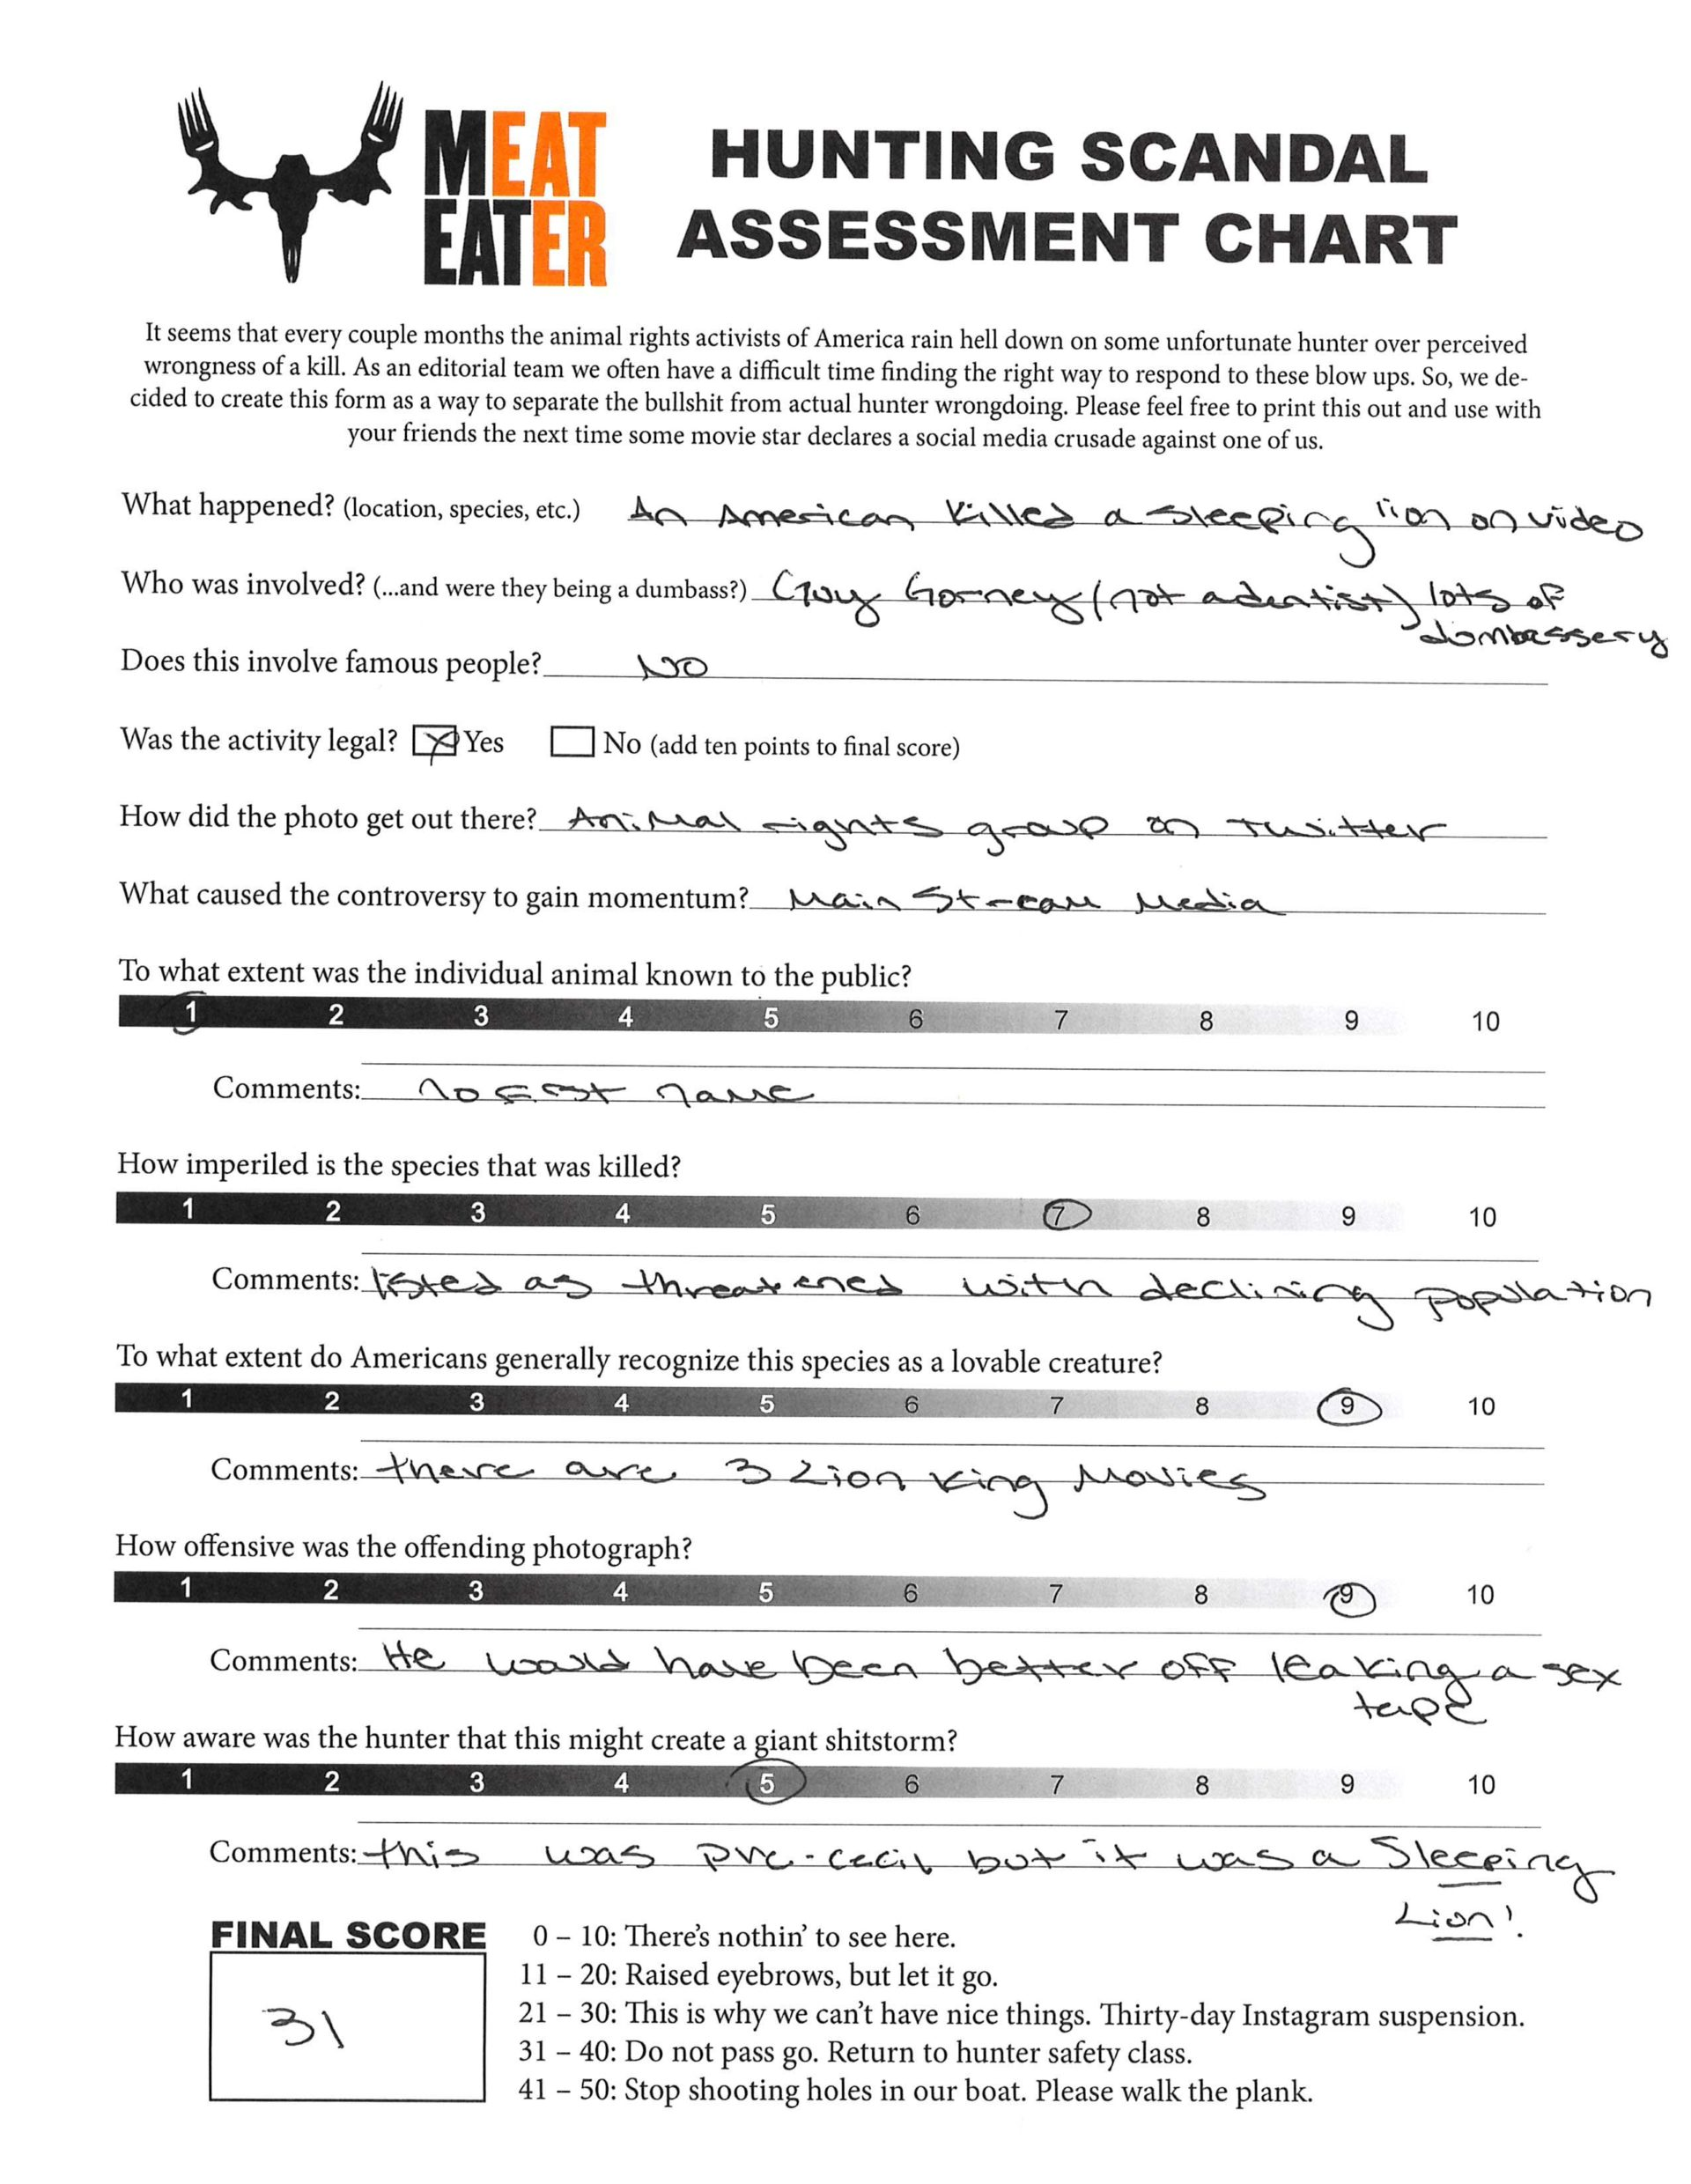 This hunting scandal assessment document goes line by line judging the depth of the sleeping lion shooter scandal.